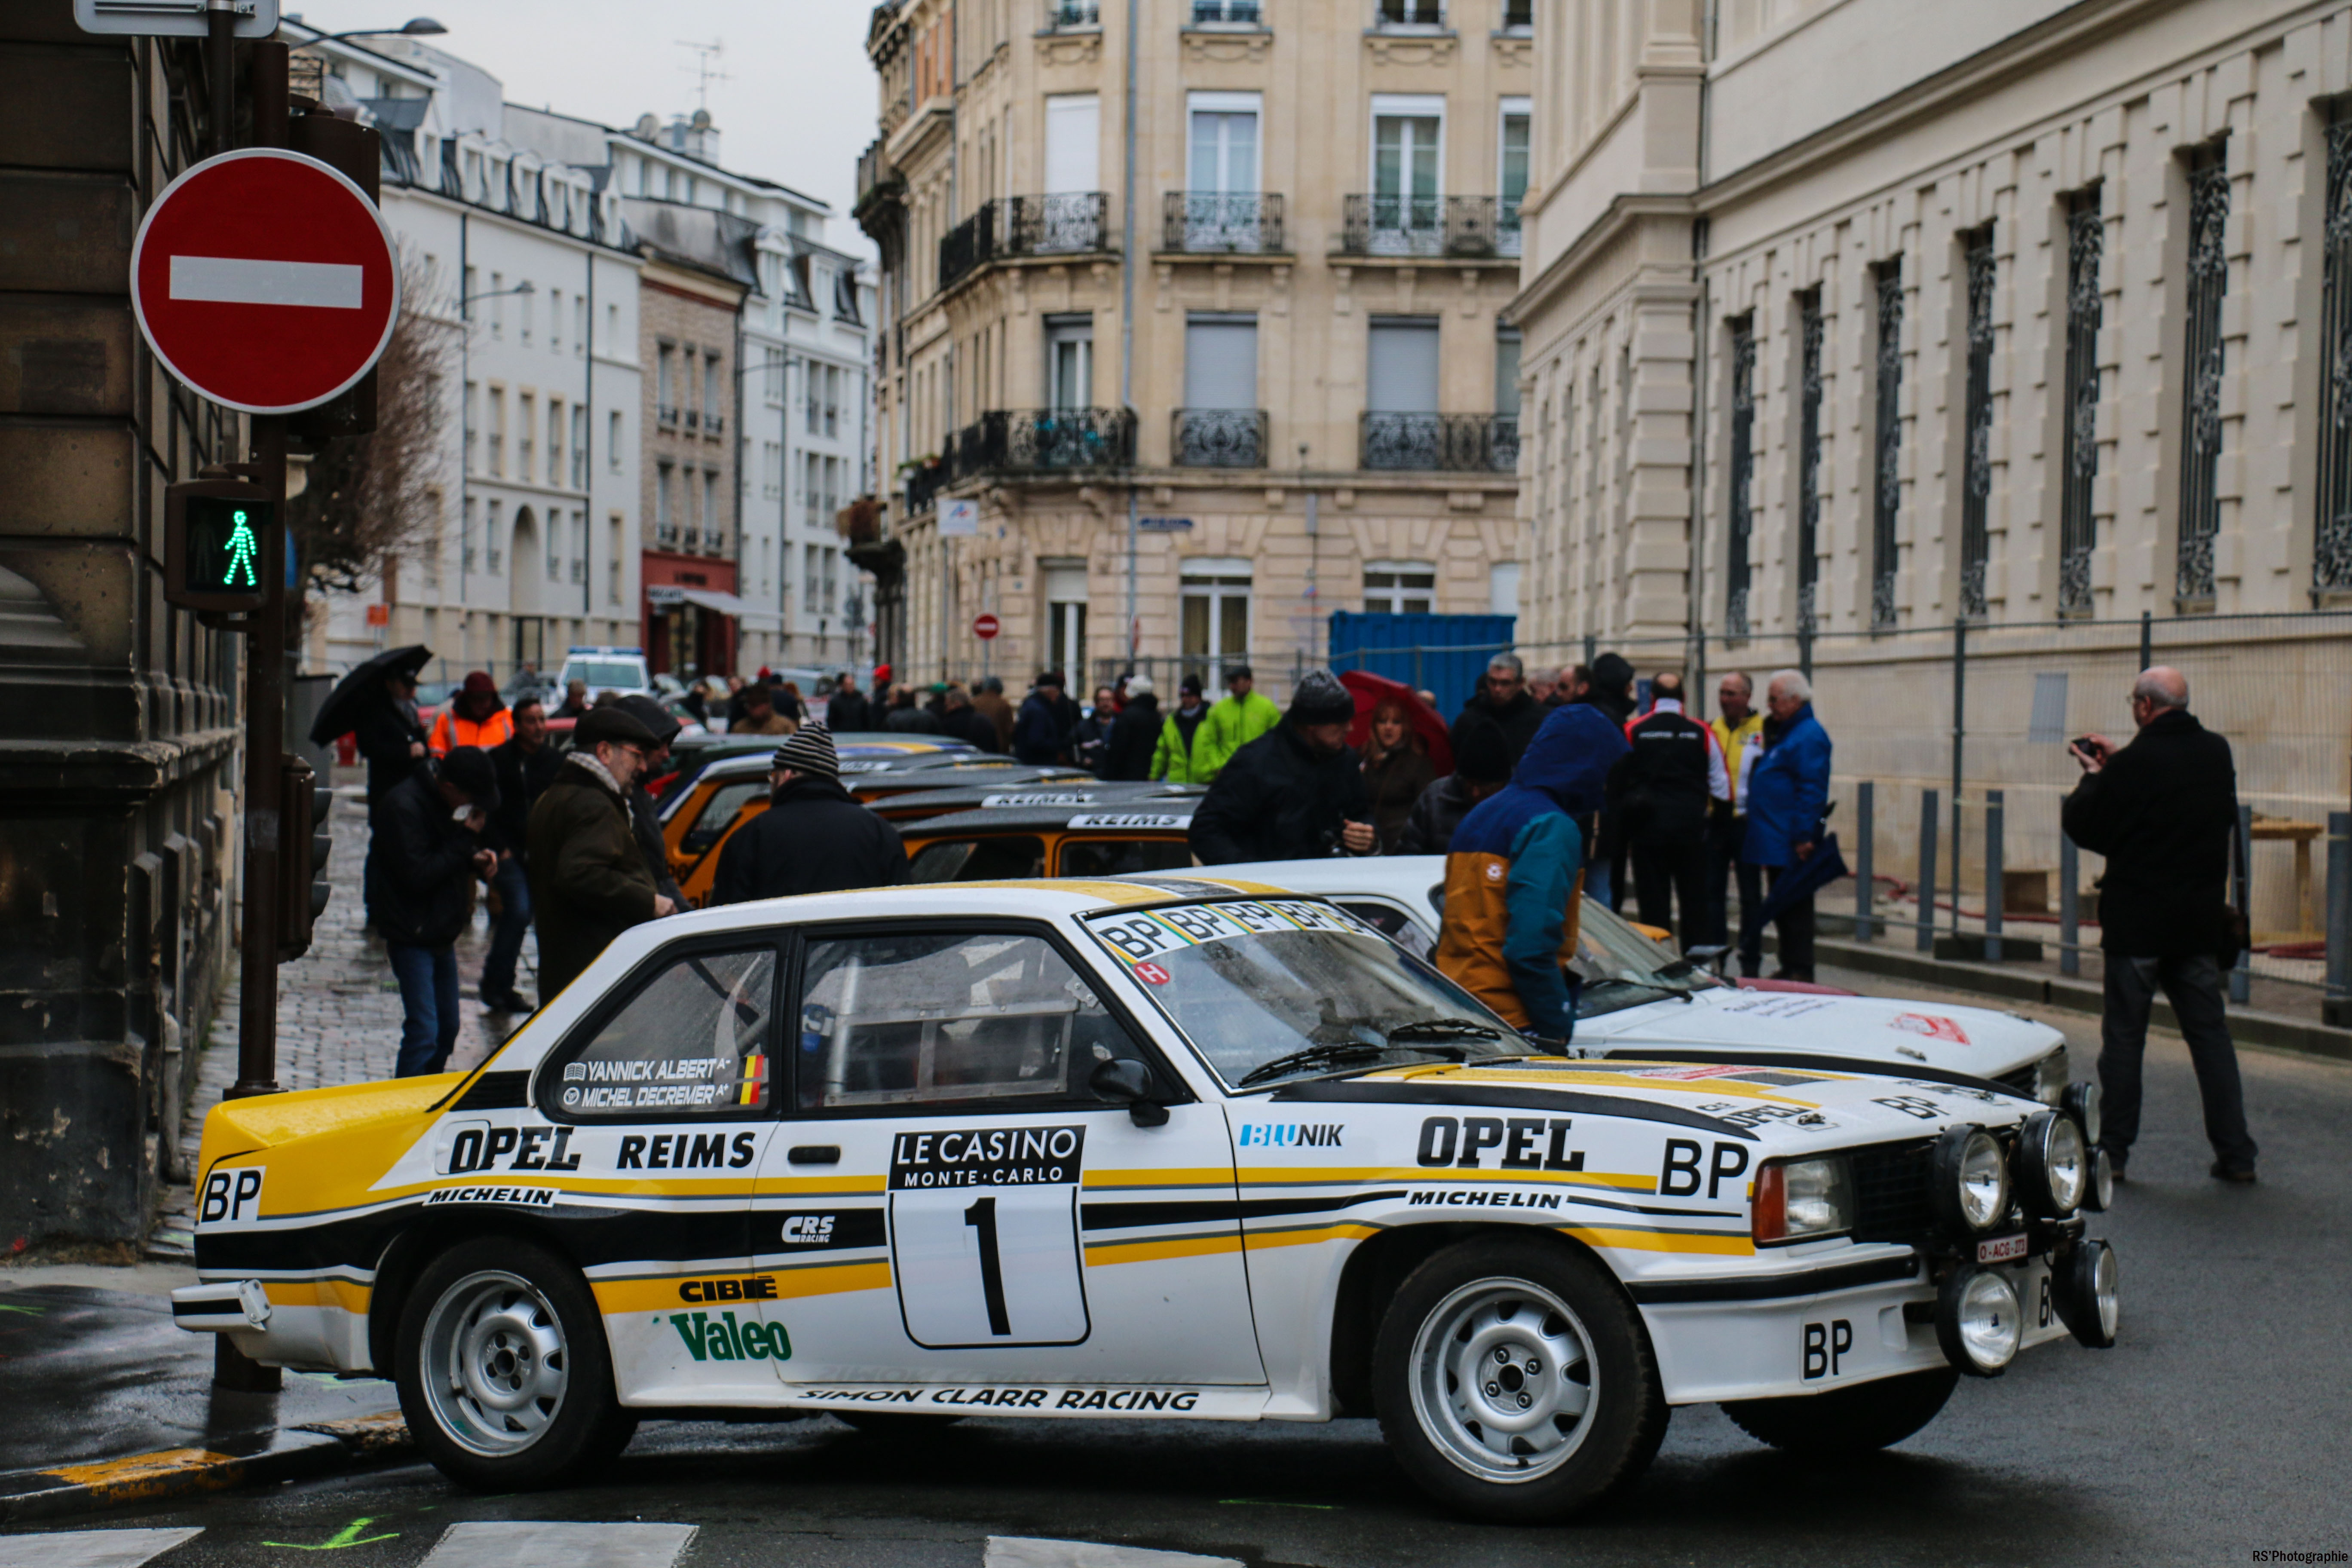 Opel-Asconna-2000-avant-front-Arnaud Demasier-RSPhotographie